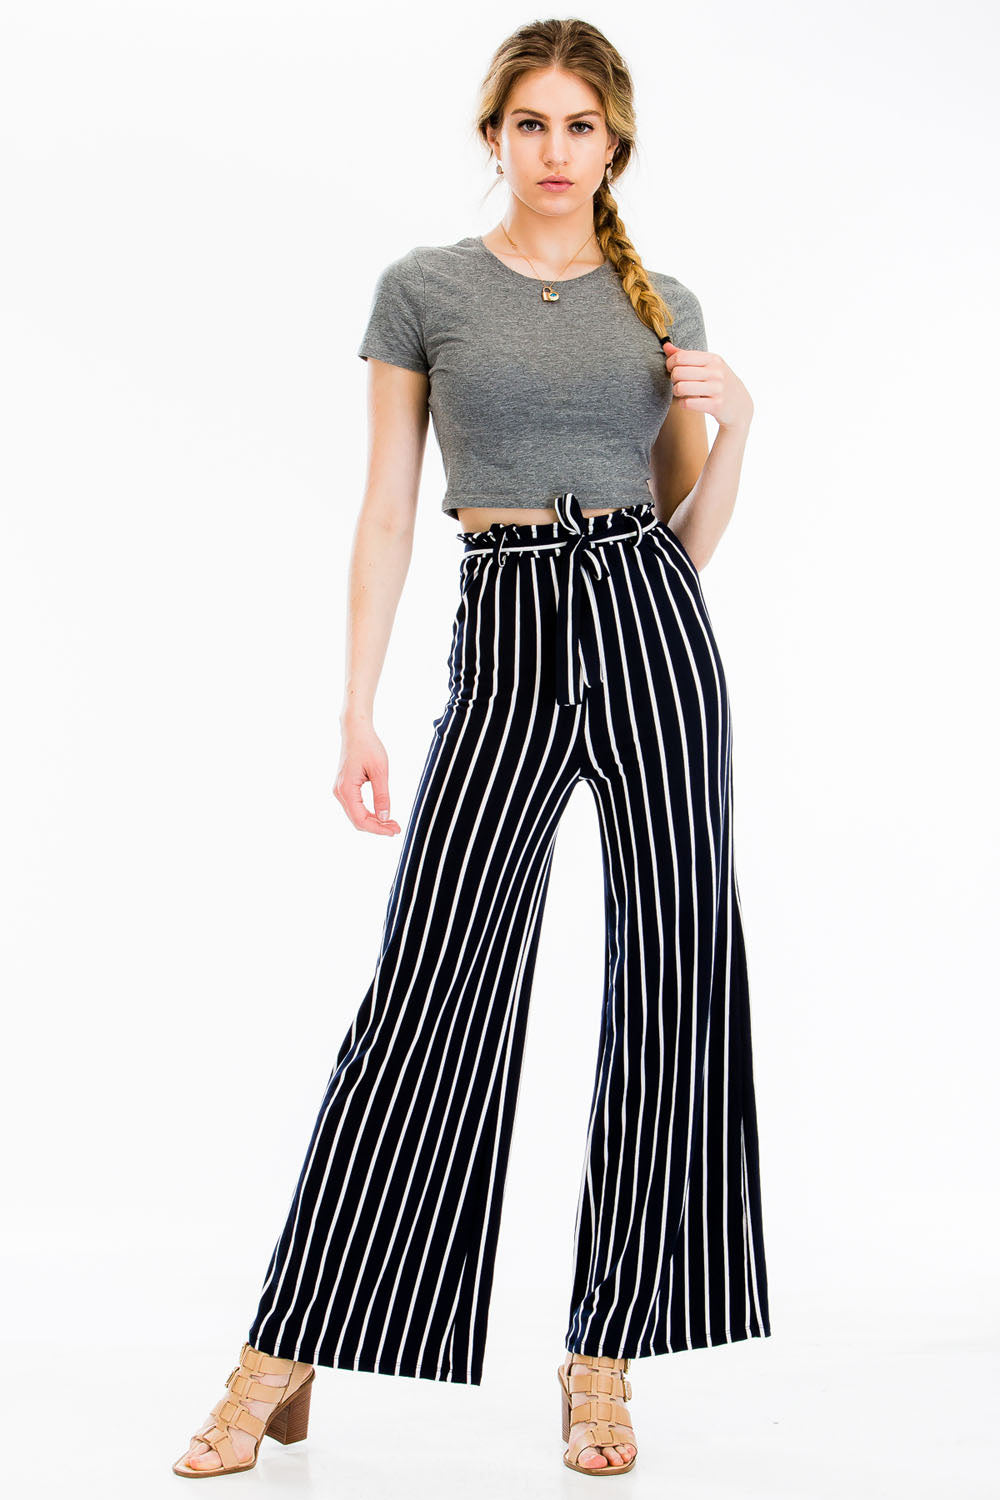 Siin Stretchy Belted Wide-leg Pants Siin Bees